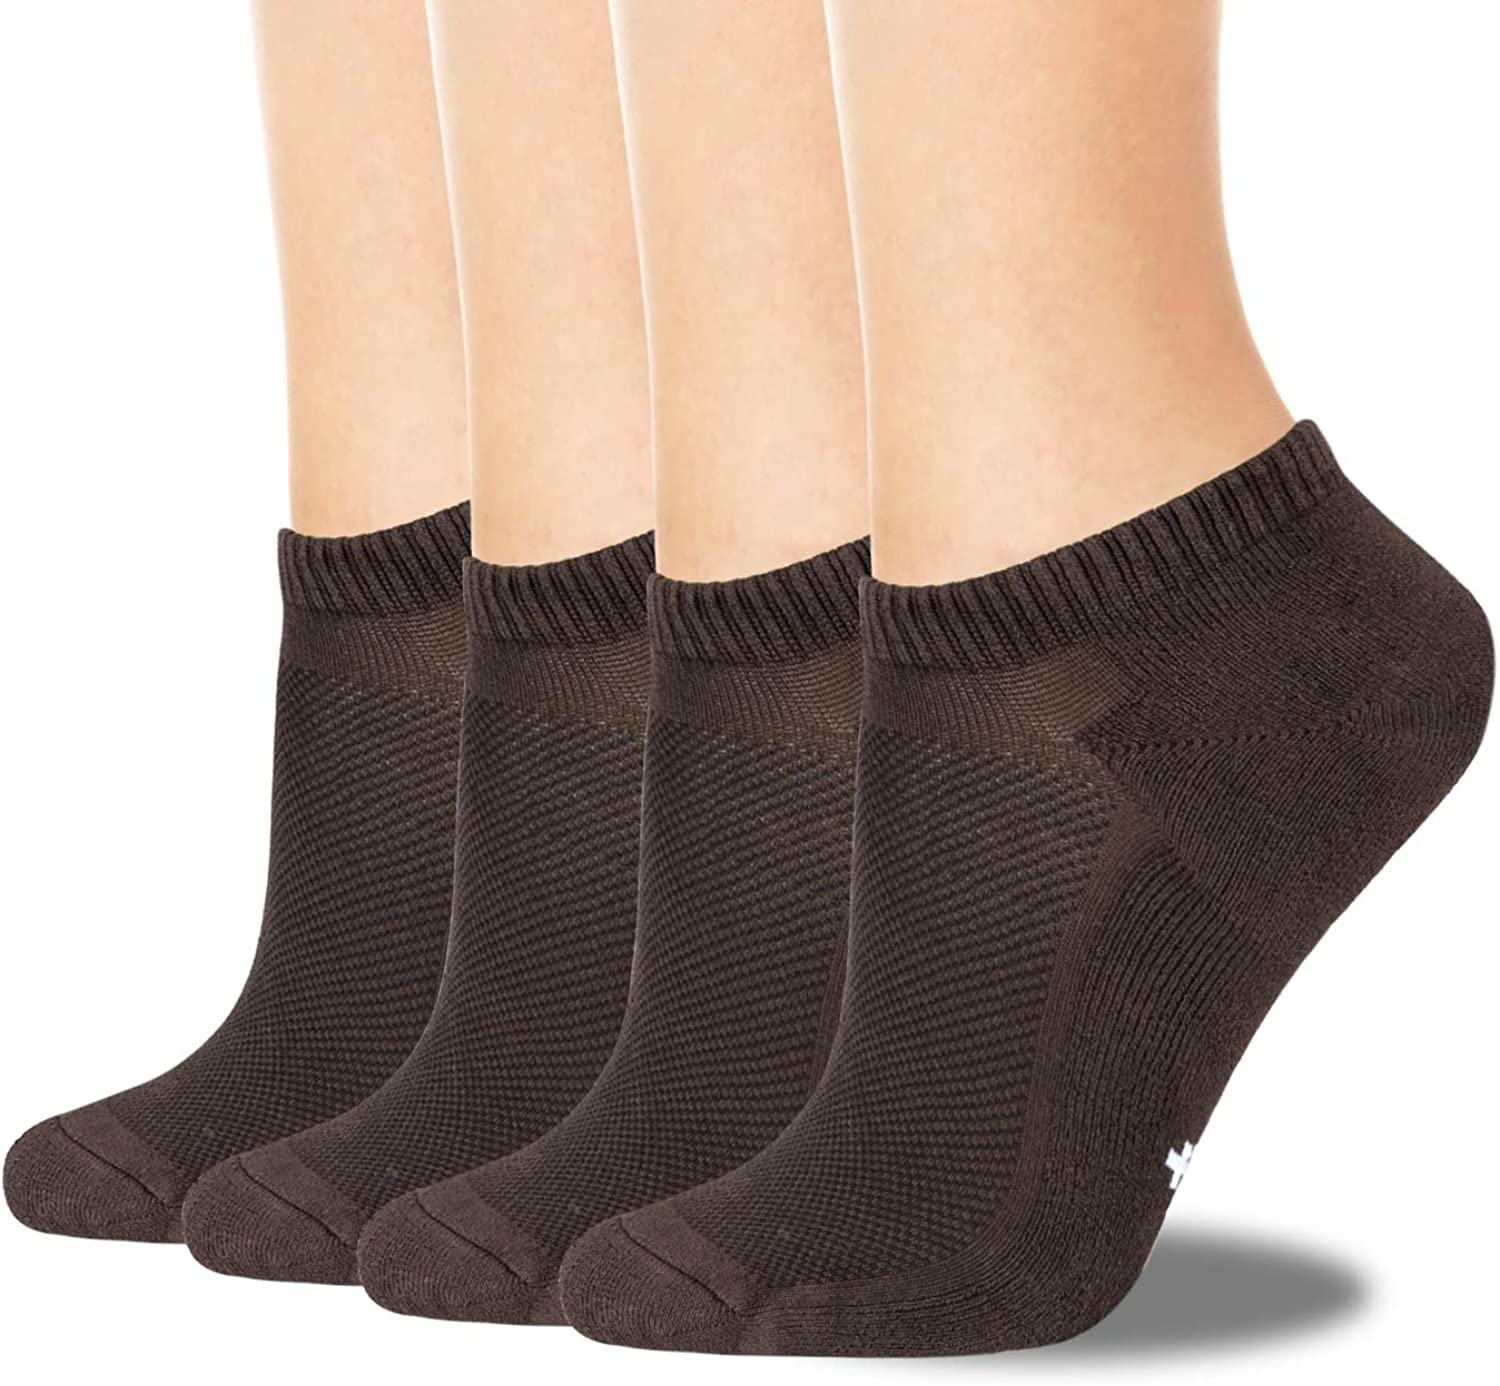 +MD Mens Breathable Bamboo Socks Moisture wicking and Odor Resistant Low Cut No Show Athletic Socks,4 Pack